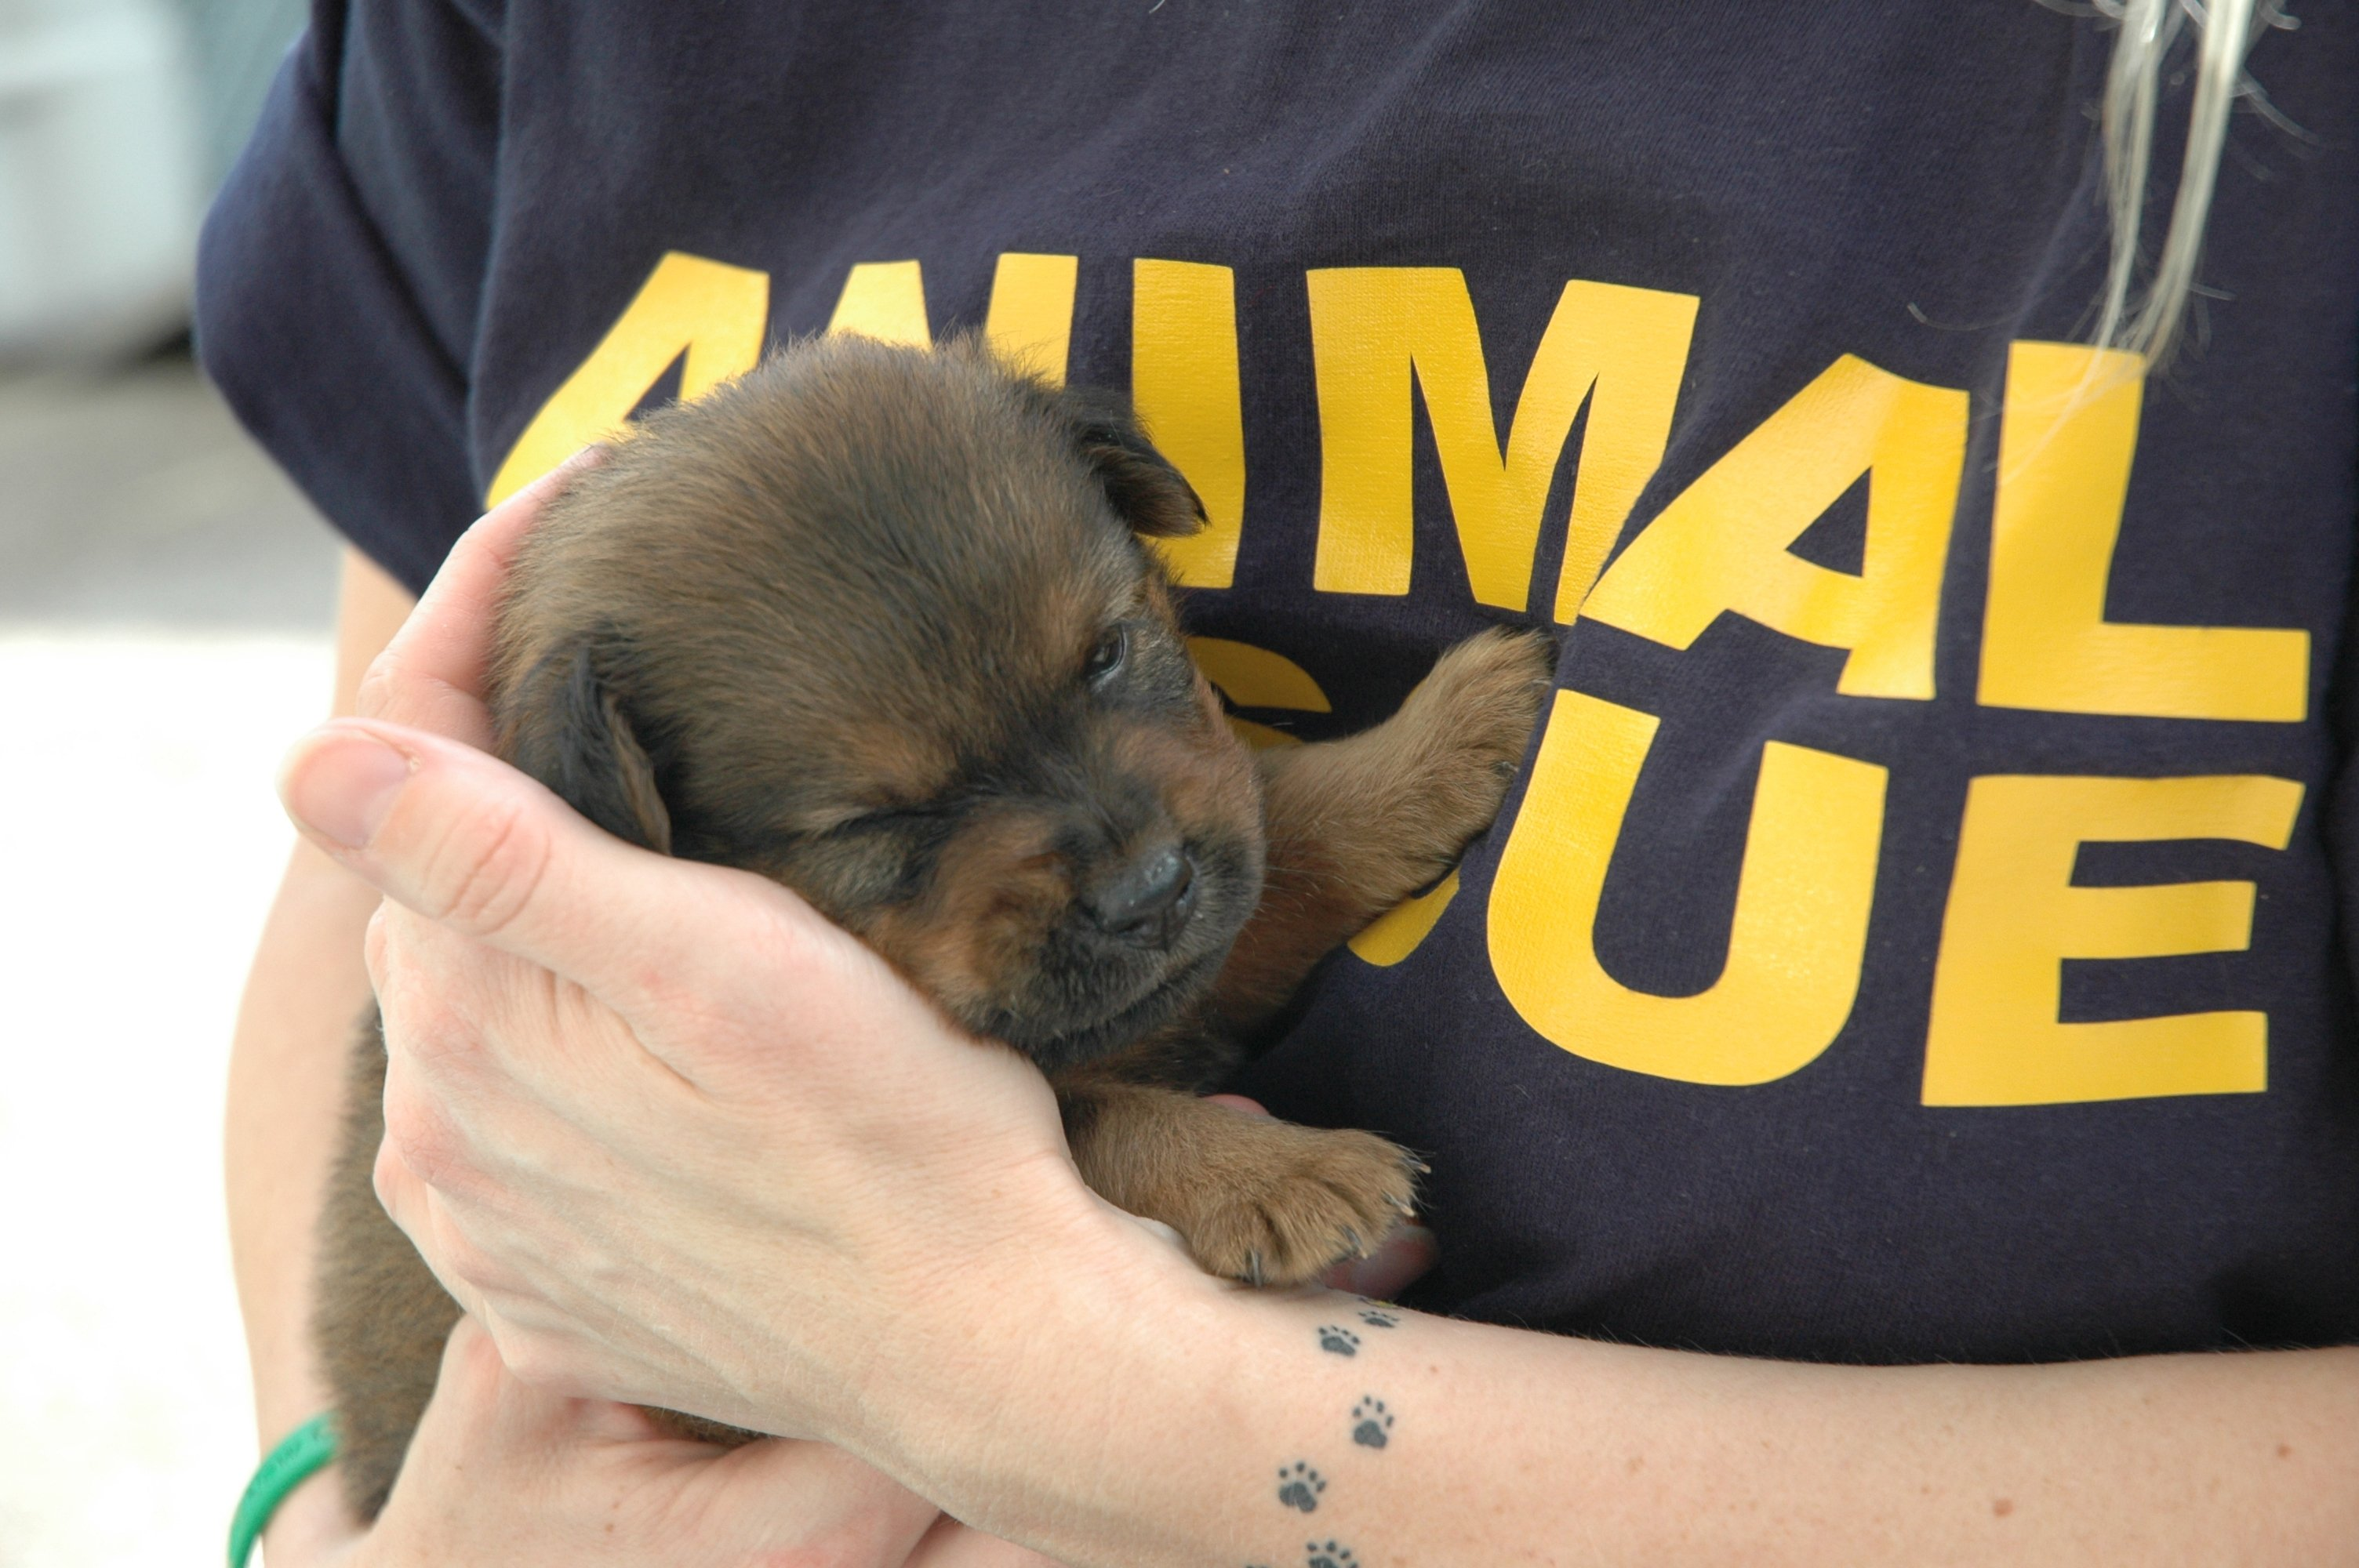 There are many ways to care for and rescue dogs. If you cannot have one at home forever, you can foster a dog or sponsor one while he is in a shelter.